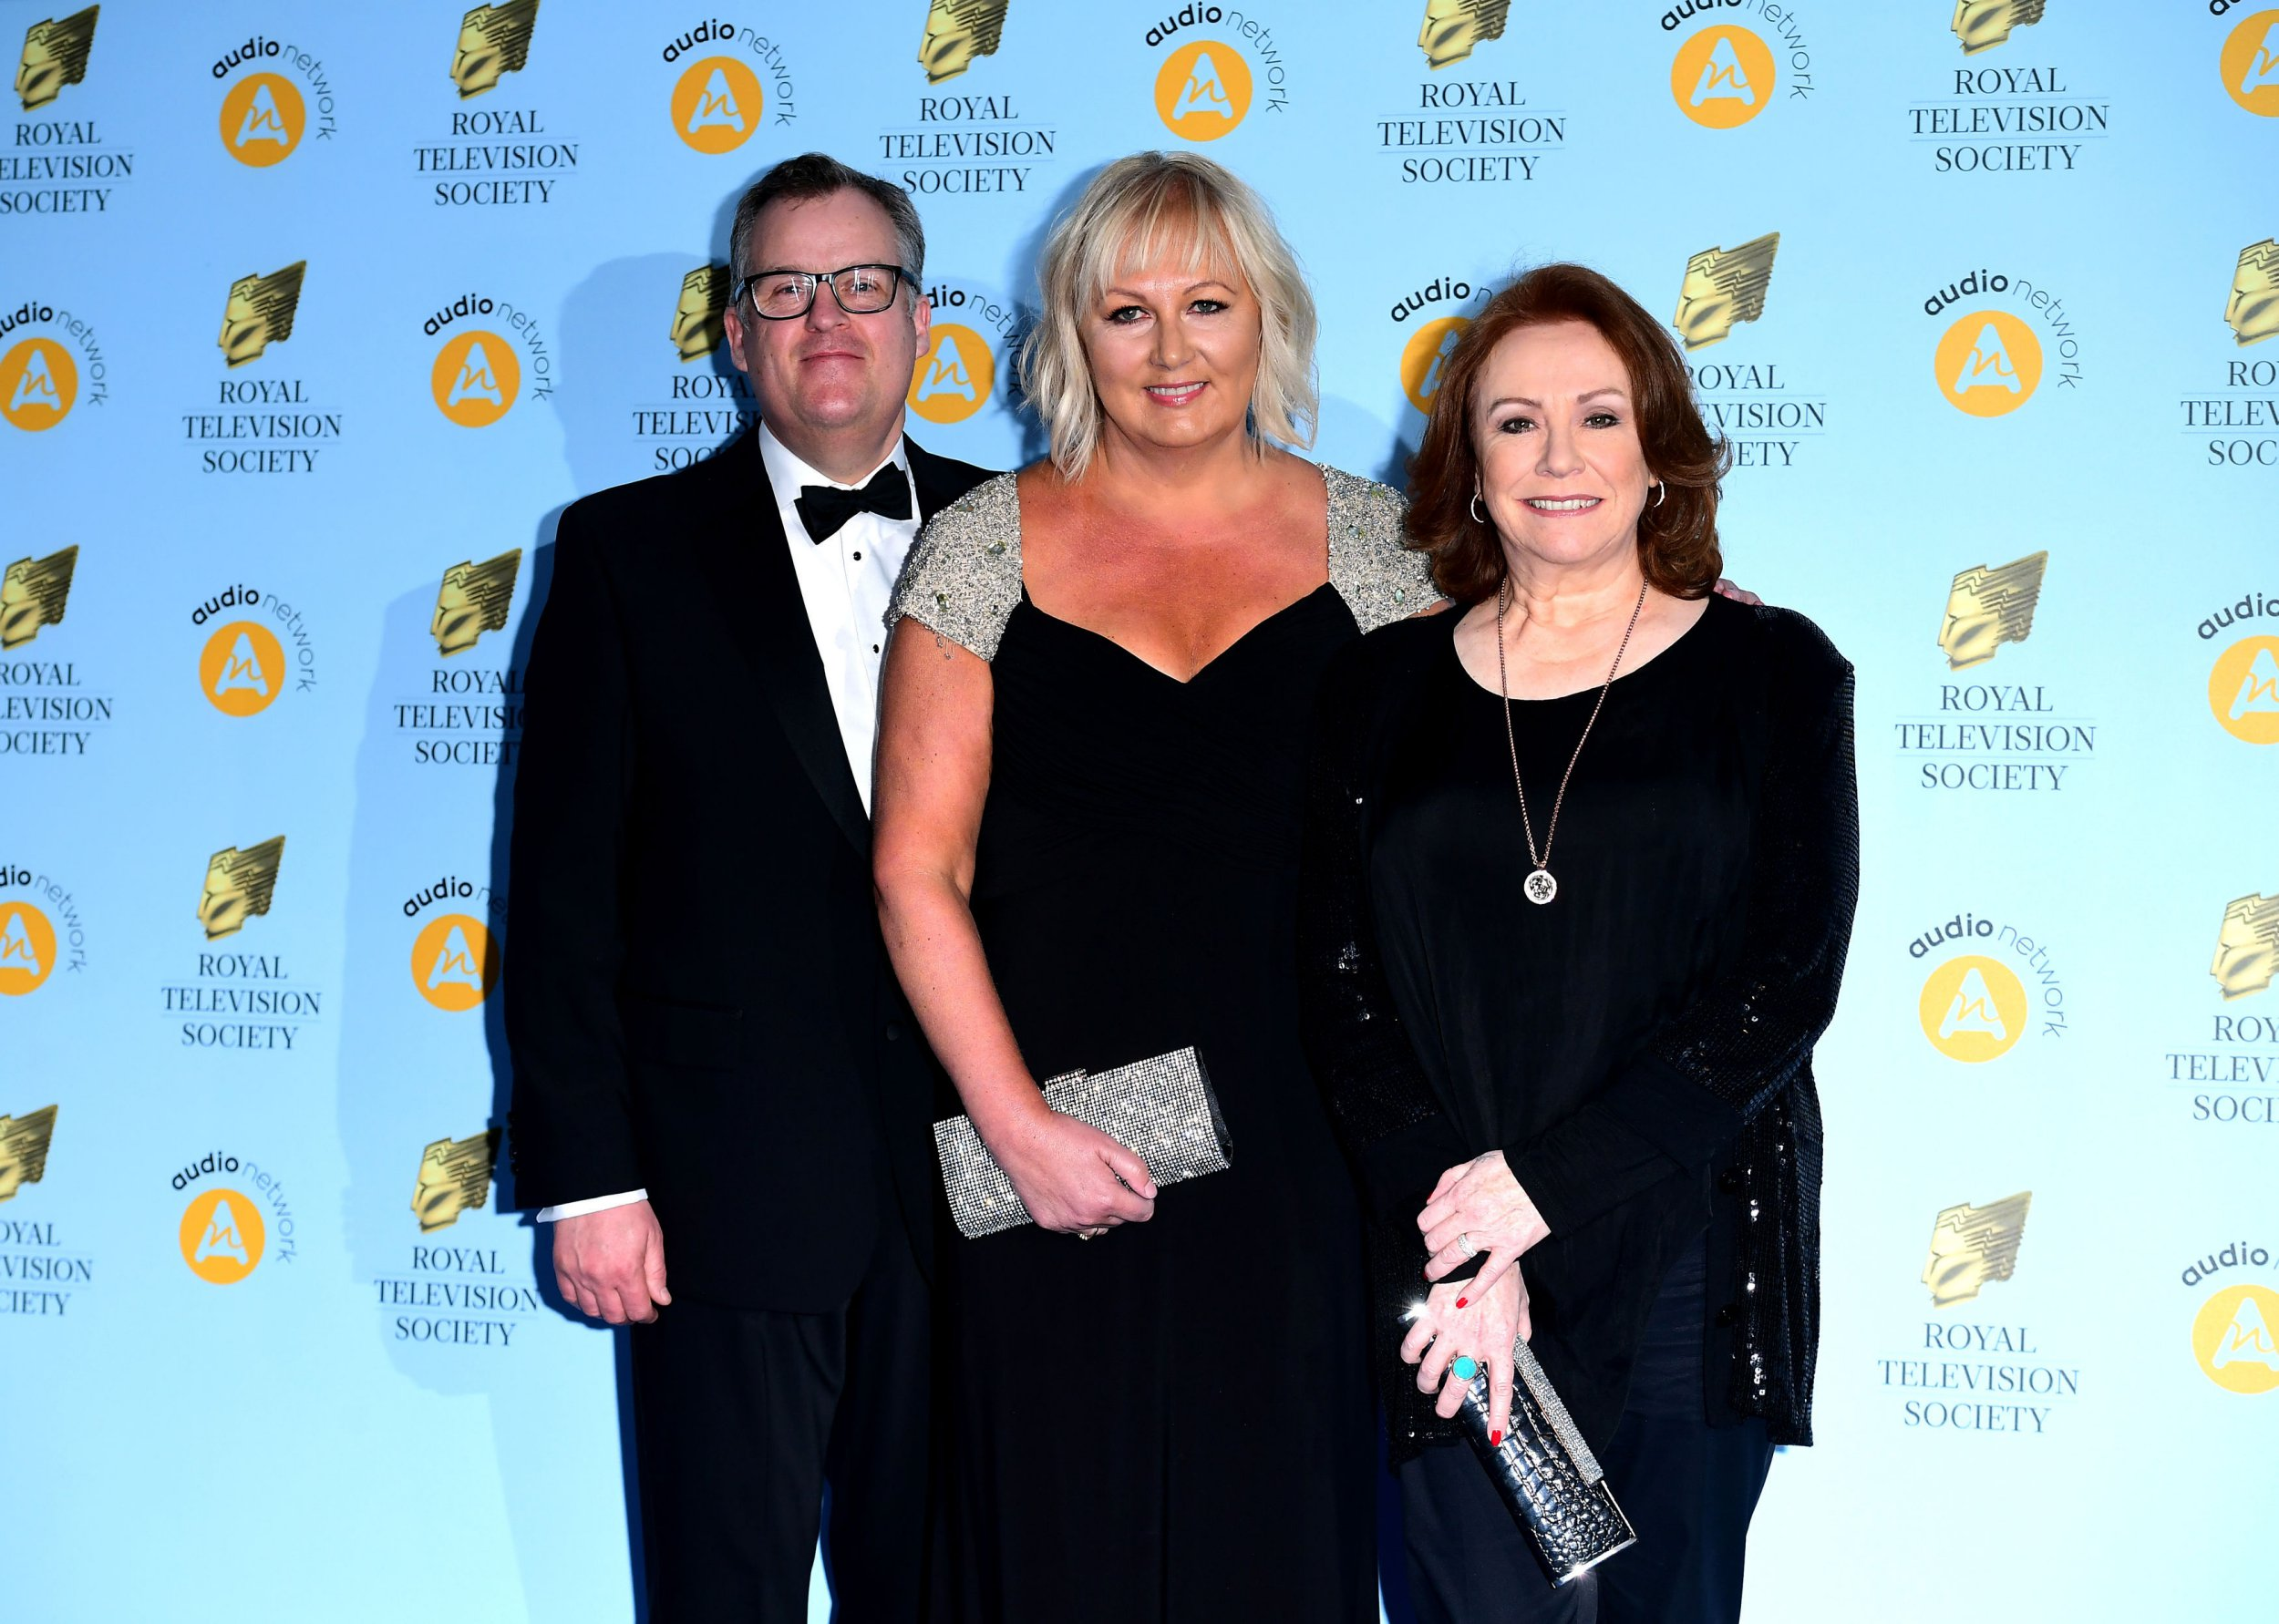 Peter Gunn, Sue Cleaver and Melanie Hill attending the Royal Television Society Programme Awards at Grosvenor House Hotel, Park Lane, London. PRESS ASSOCIATION Photo. Picture date: Tuesday 20th March, 2018. Photo credit should read: Ian West/PA Wire